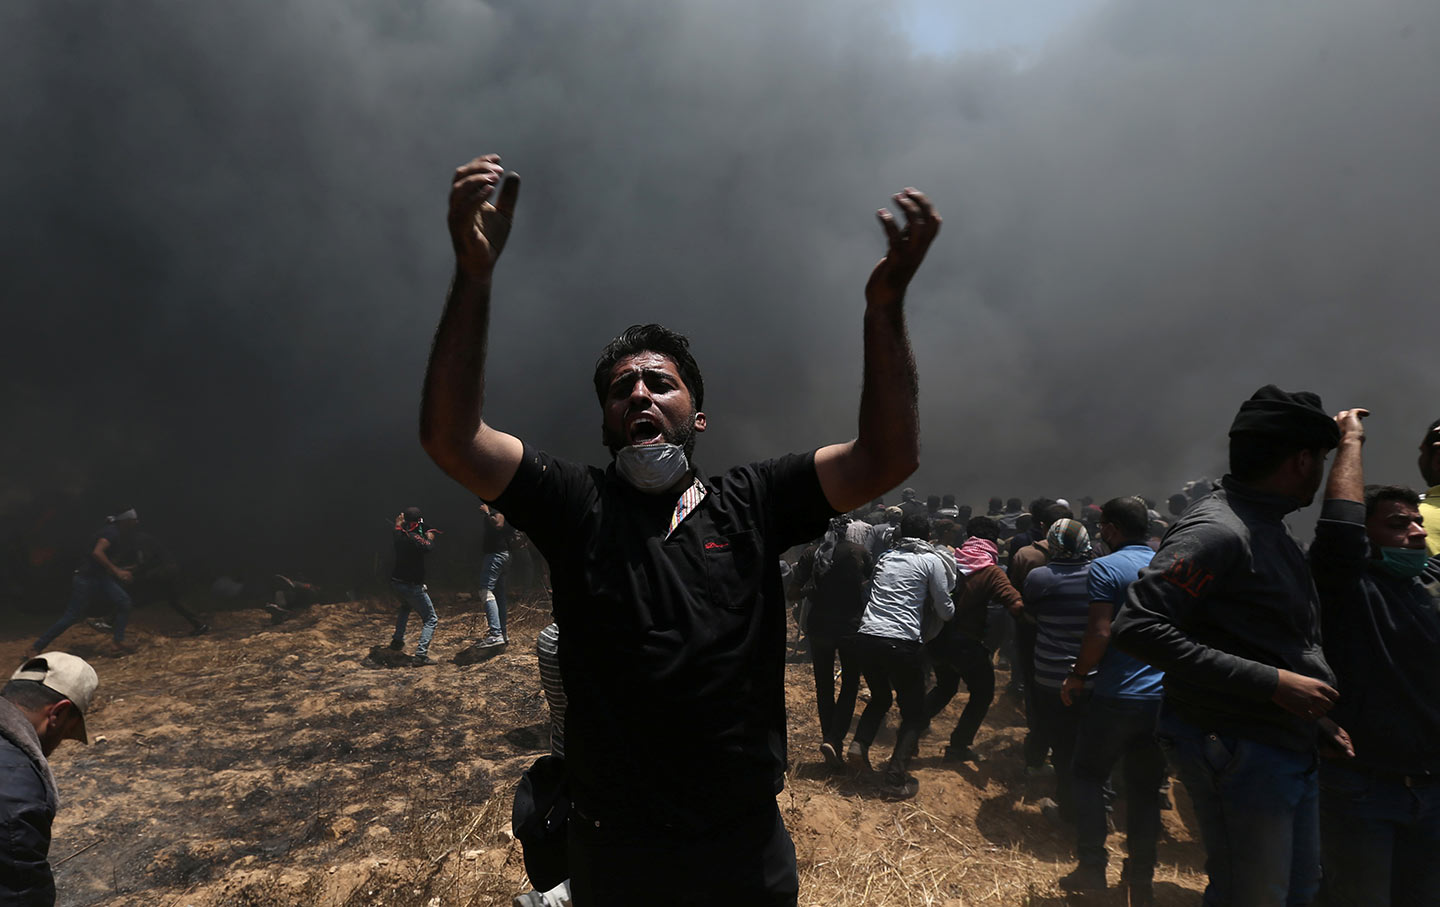 The nation listen a new embassy in jerusalem an old struggle in gaza fandeluxe Image collections